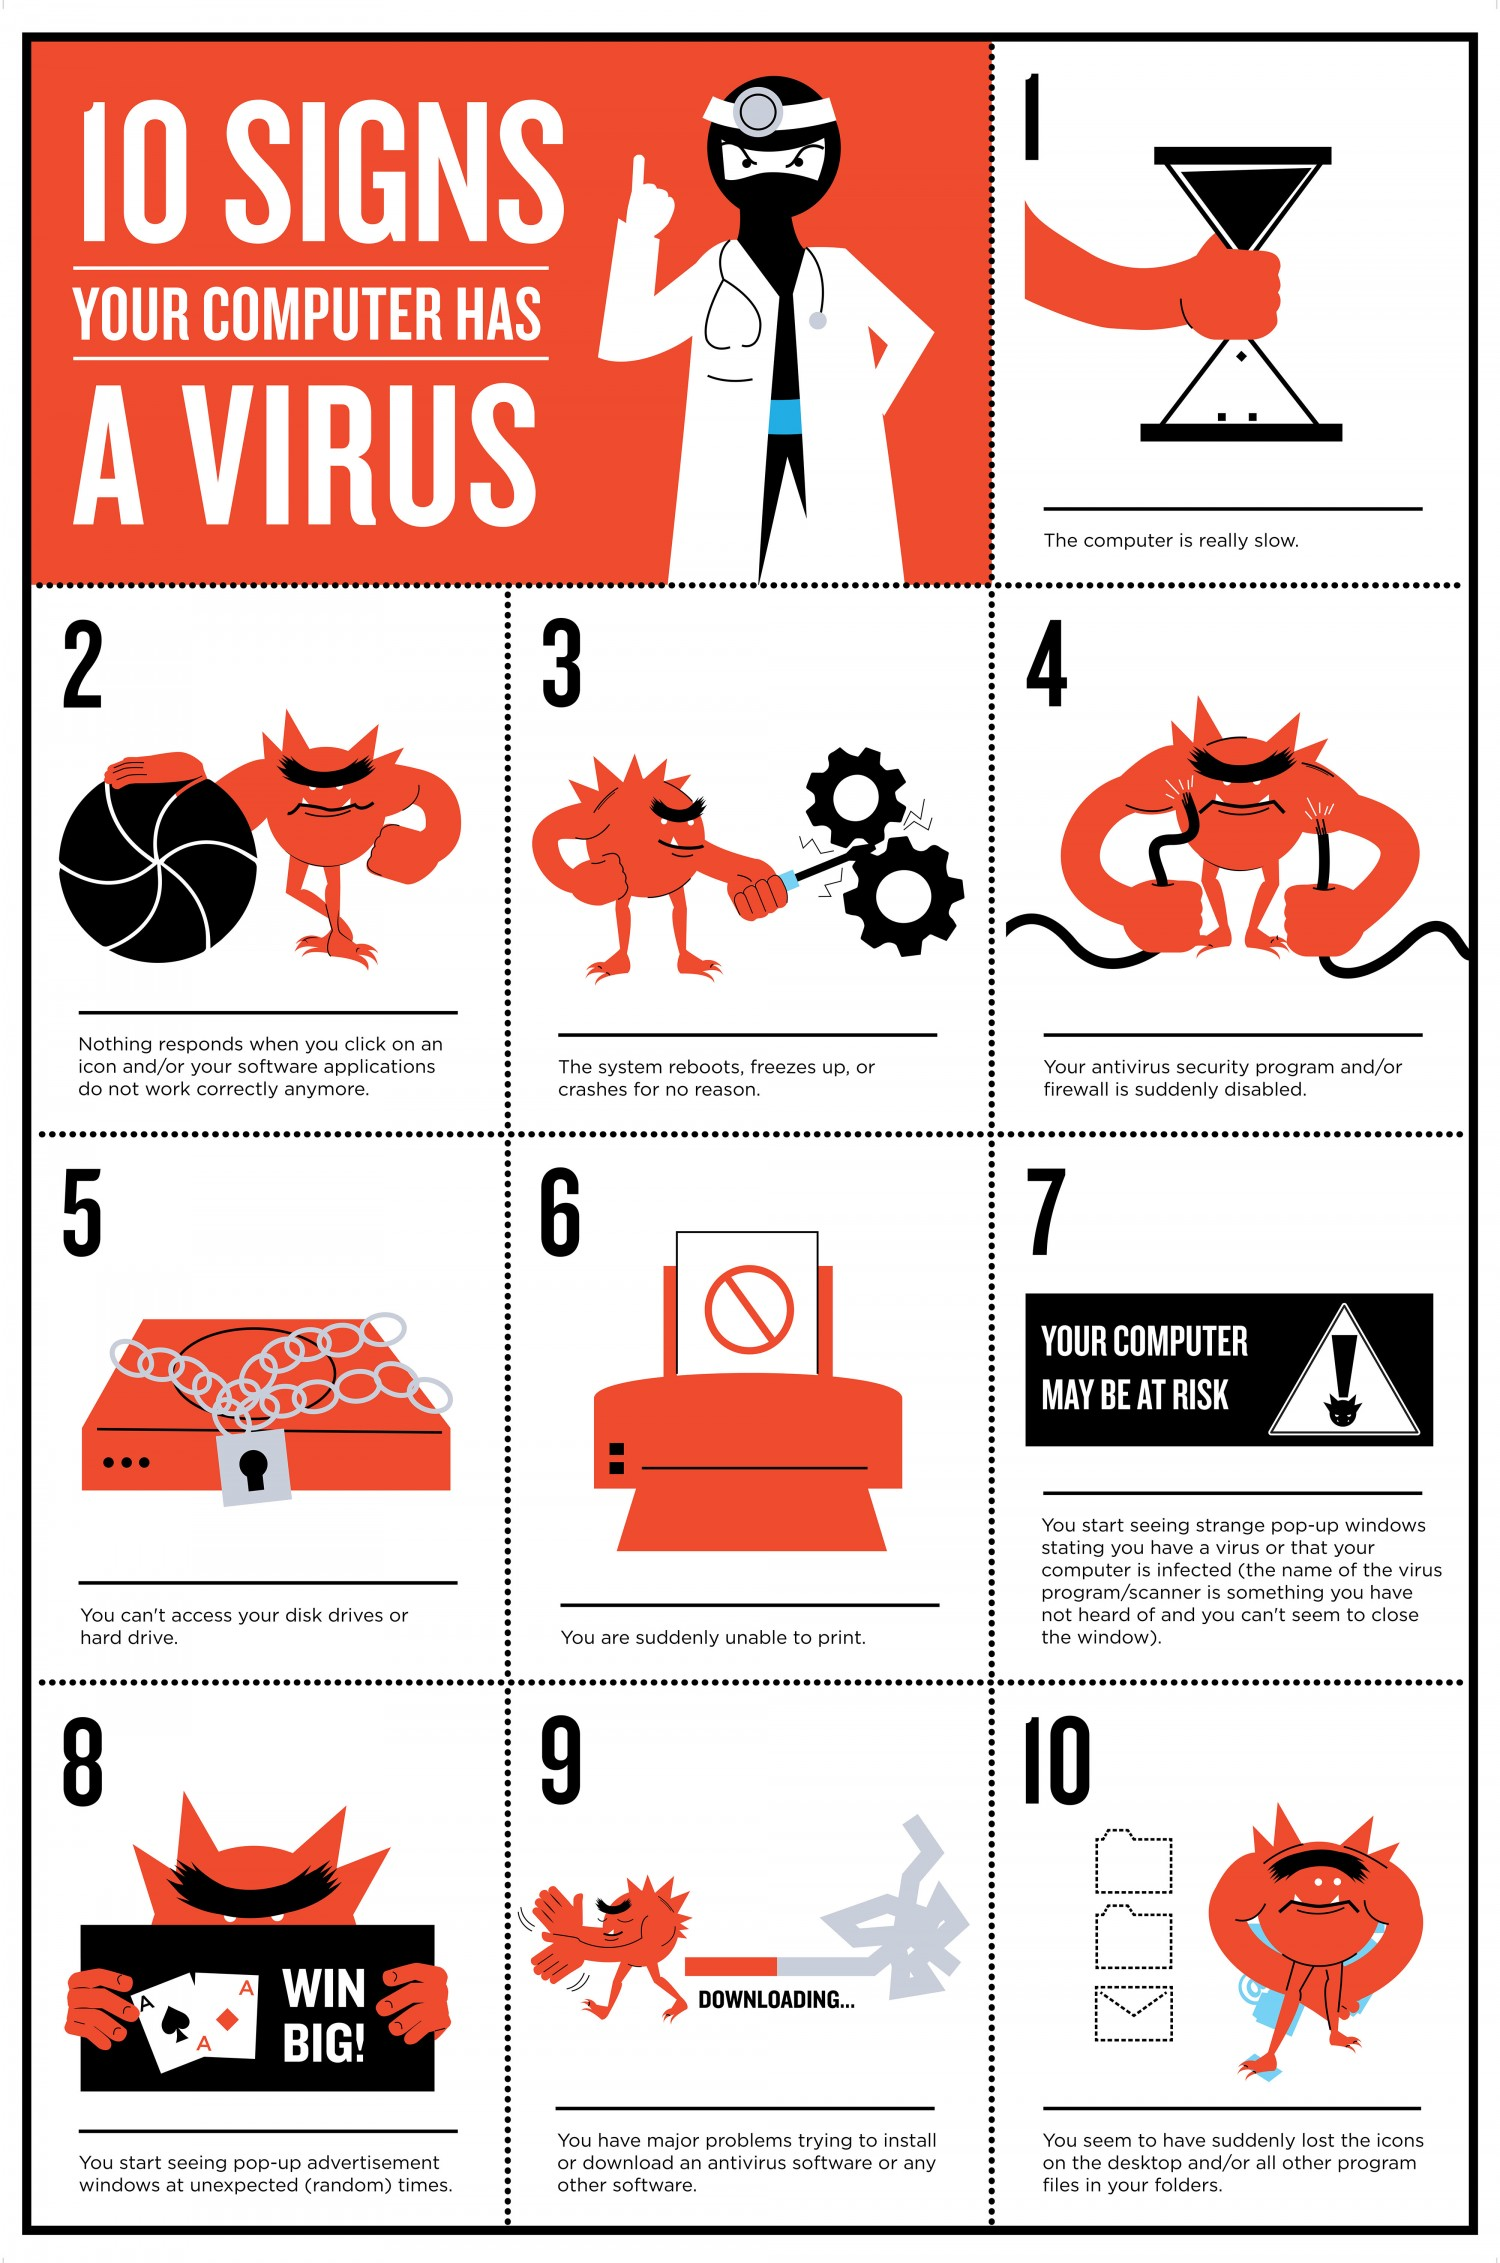 10-signs-your-computer-has-a-virus_5391f06946102_w1500